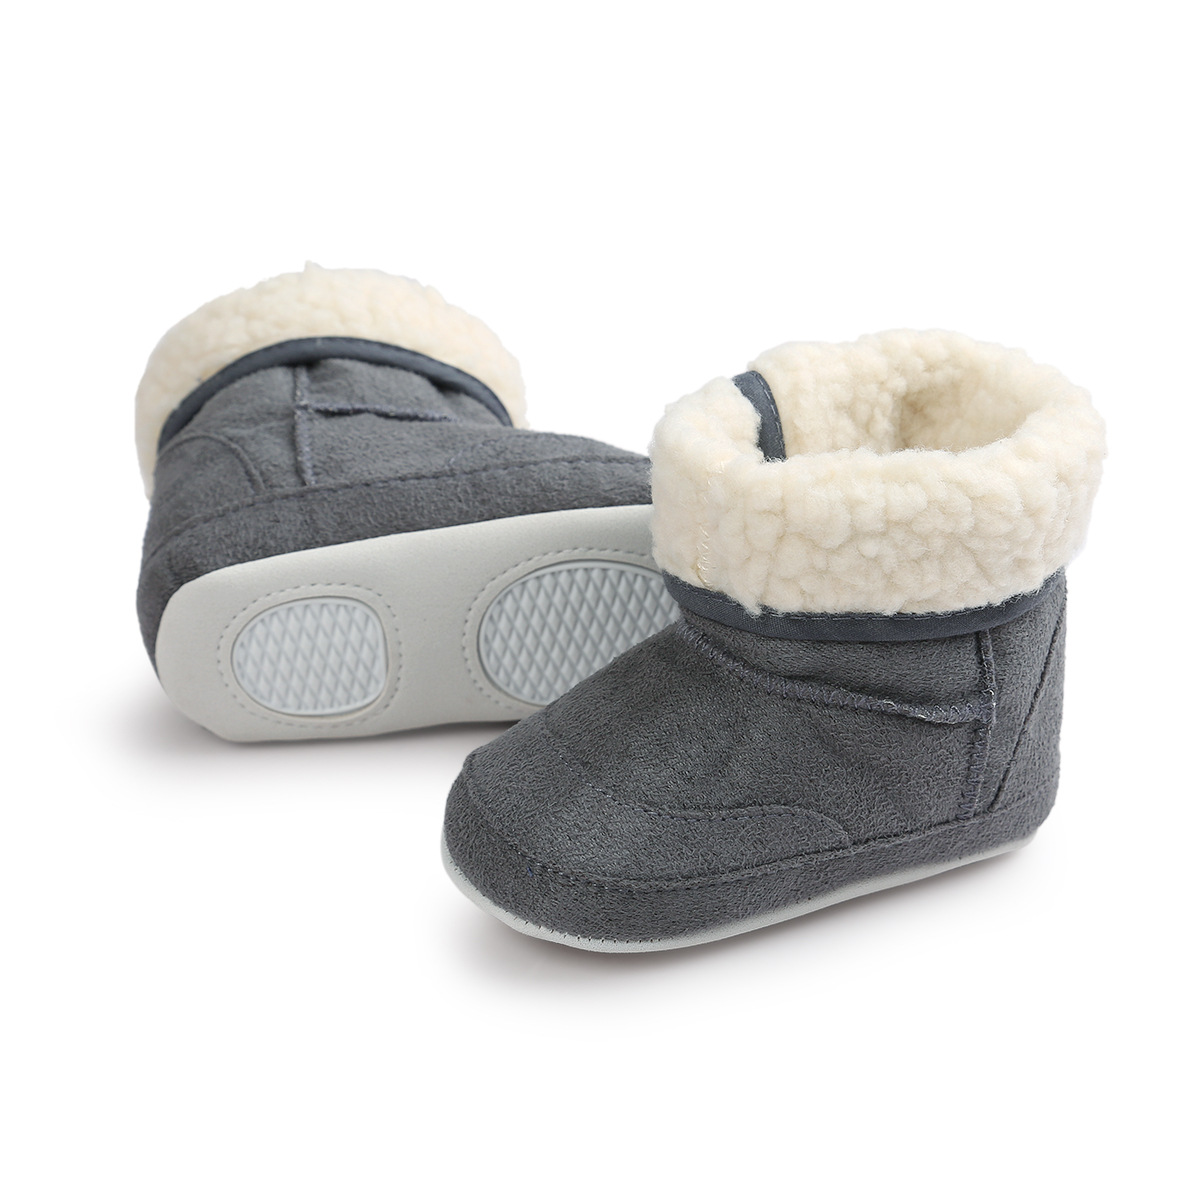 0 3 6 12 Months Baby Shoes Soft Bottom Baby Boots Winter ...